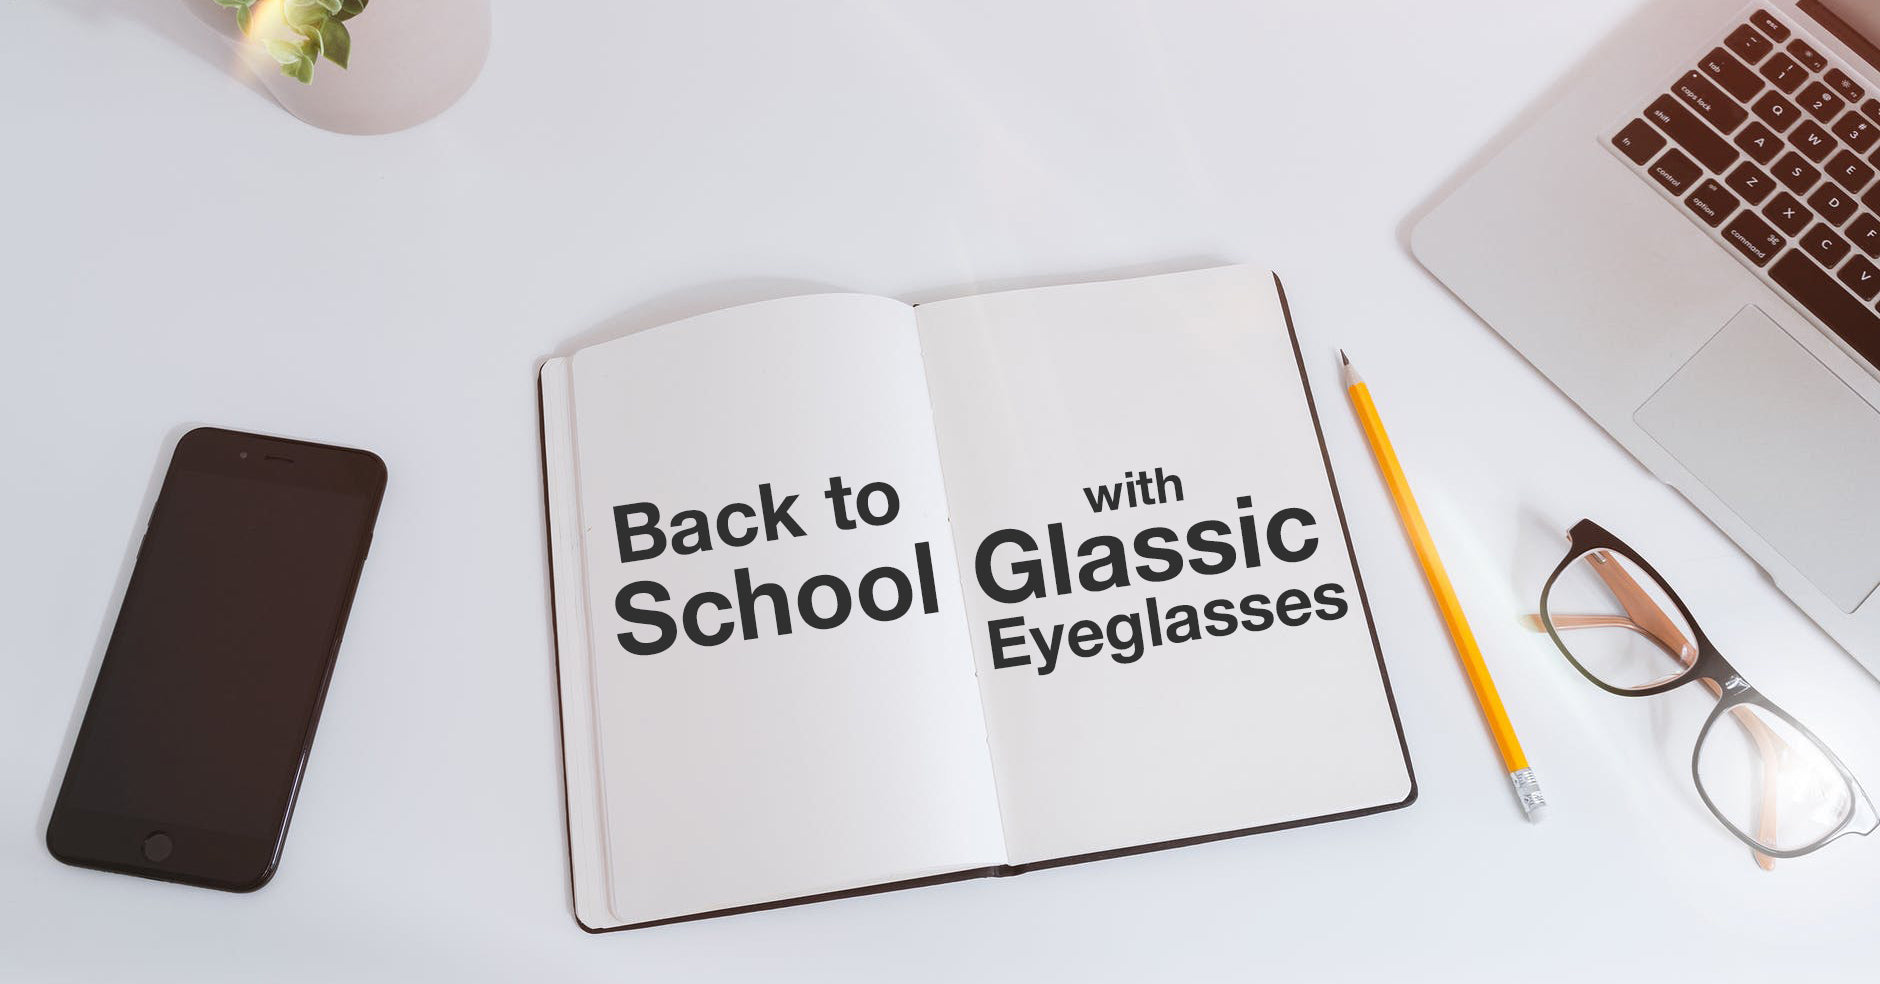 Back To School With Stylish Eyeglasses From Glassic